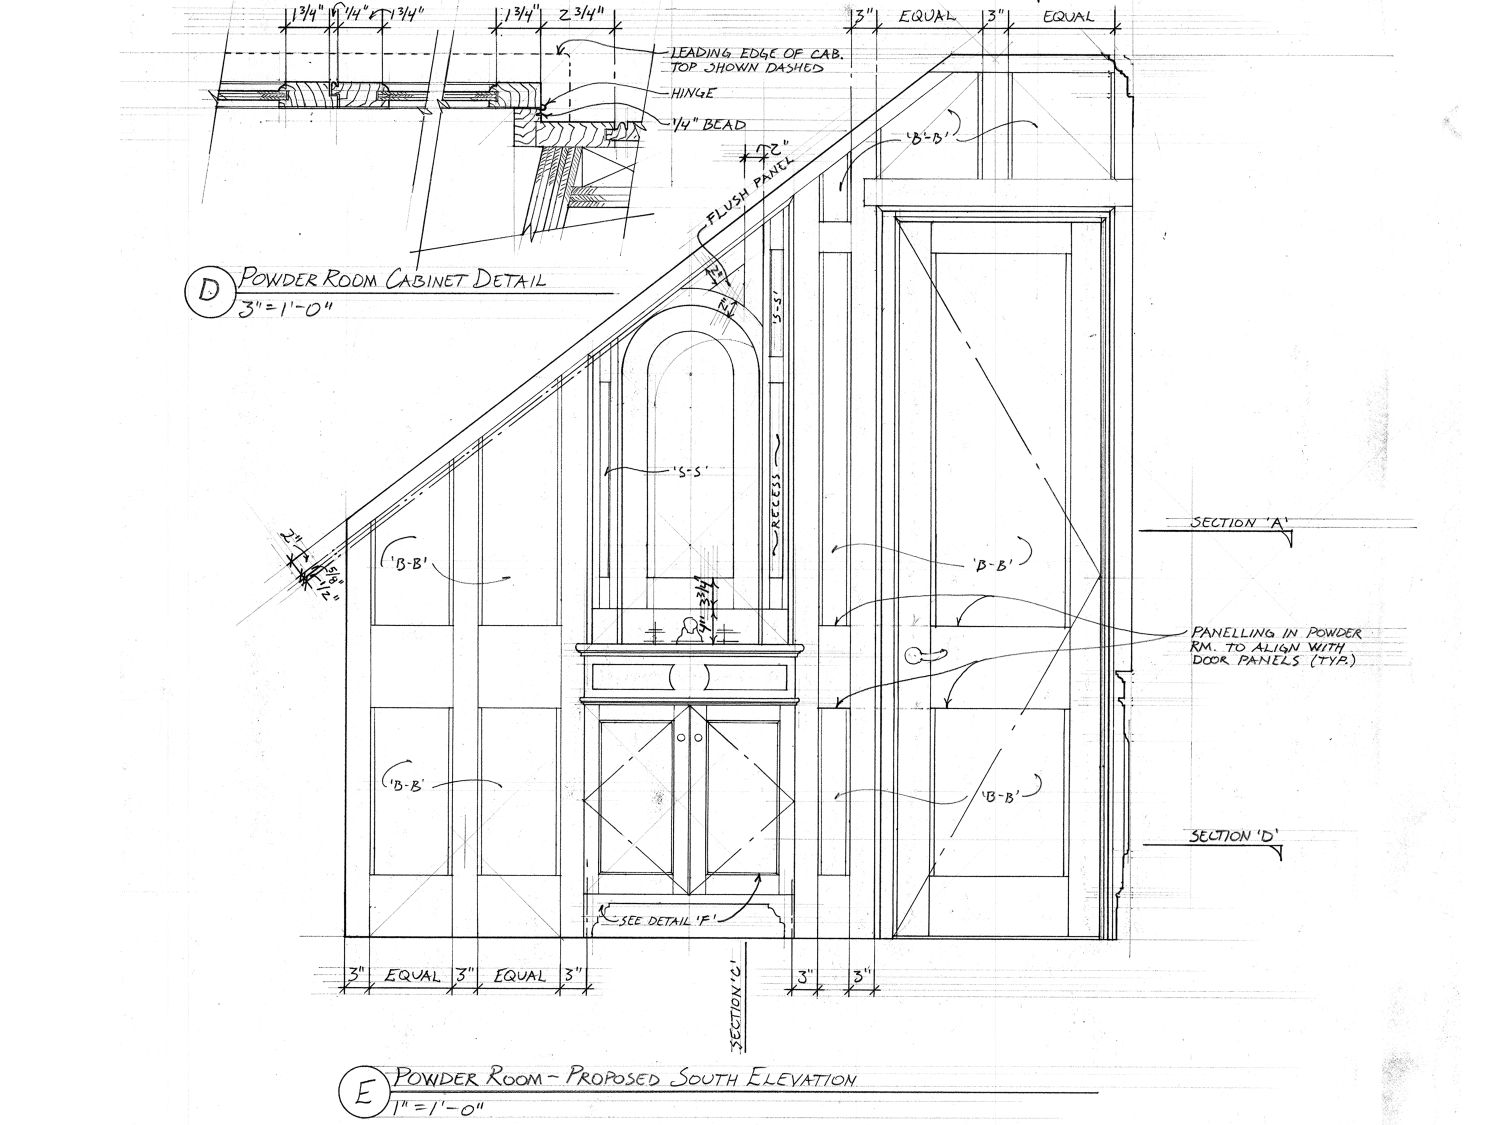 2-drawing_bath elevation.jpg